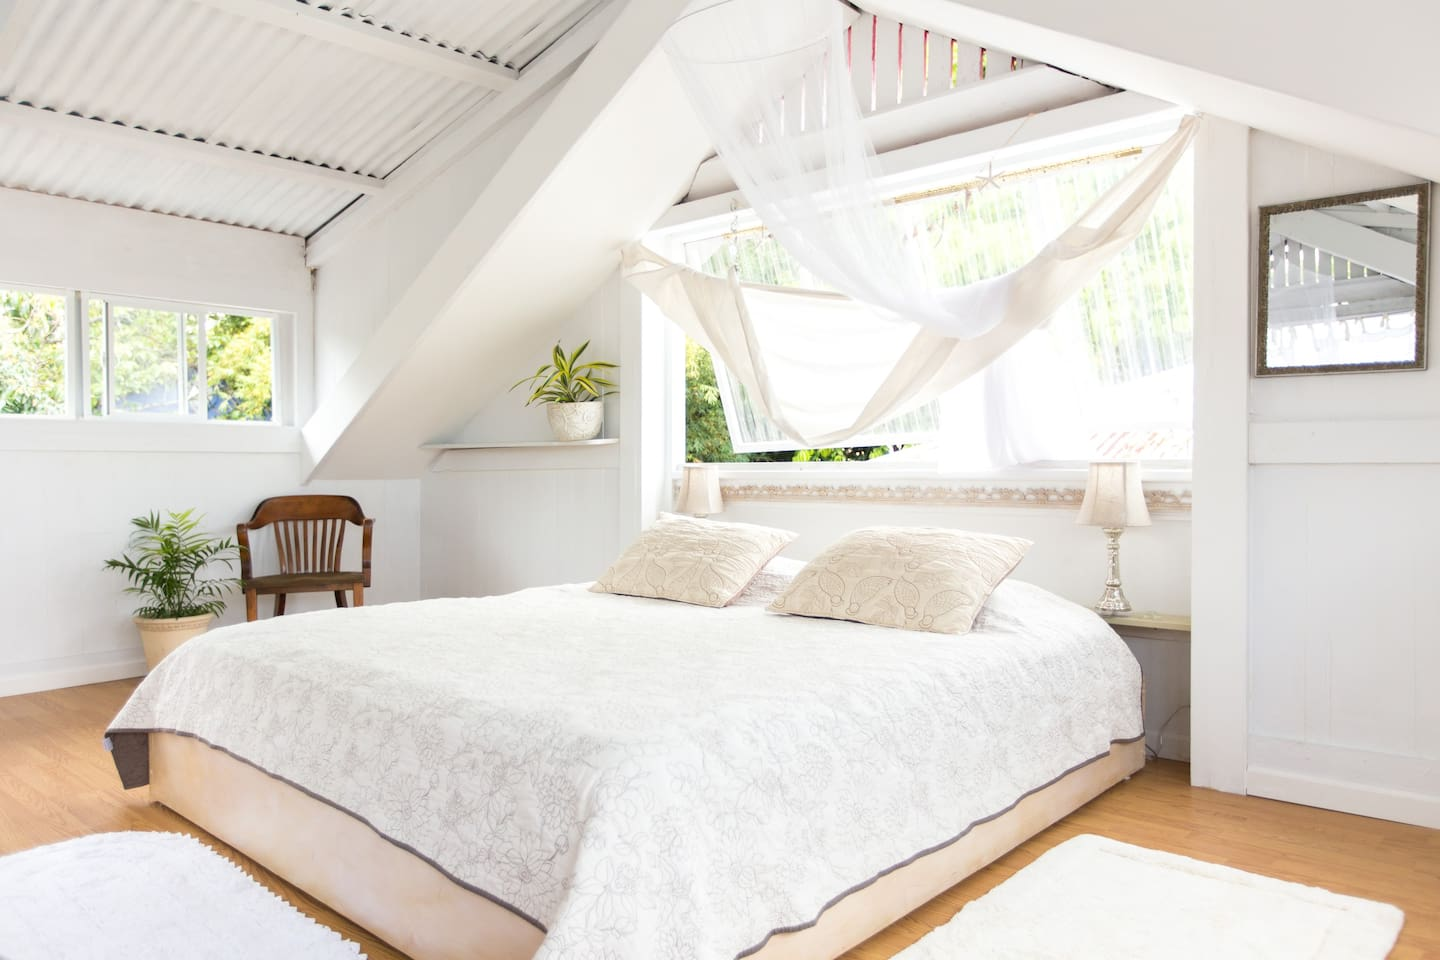 The Attic Bedroom of 'The Sugar Shack' offers a peaceful retreat and a California King Bed for a good night's rest.